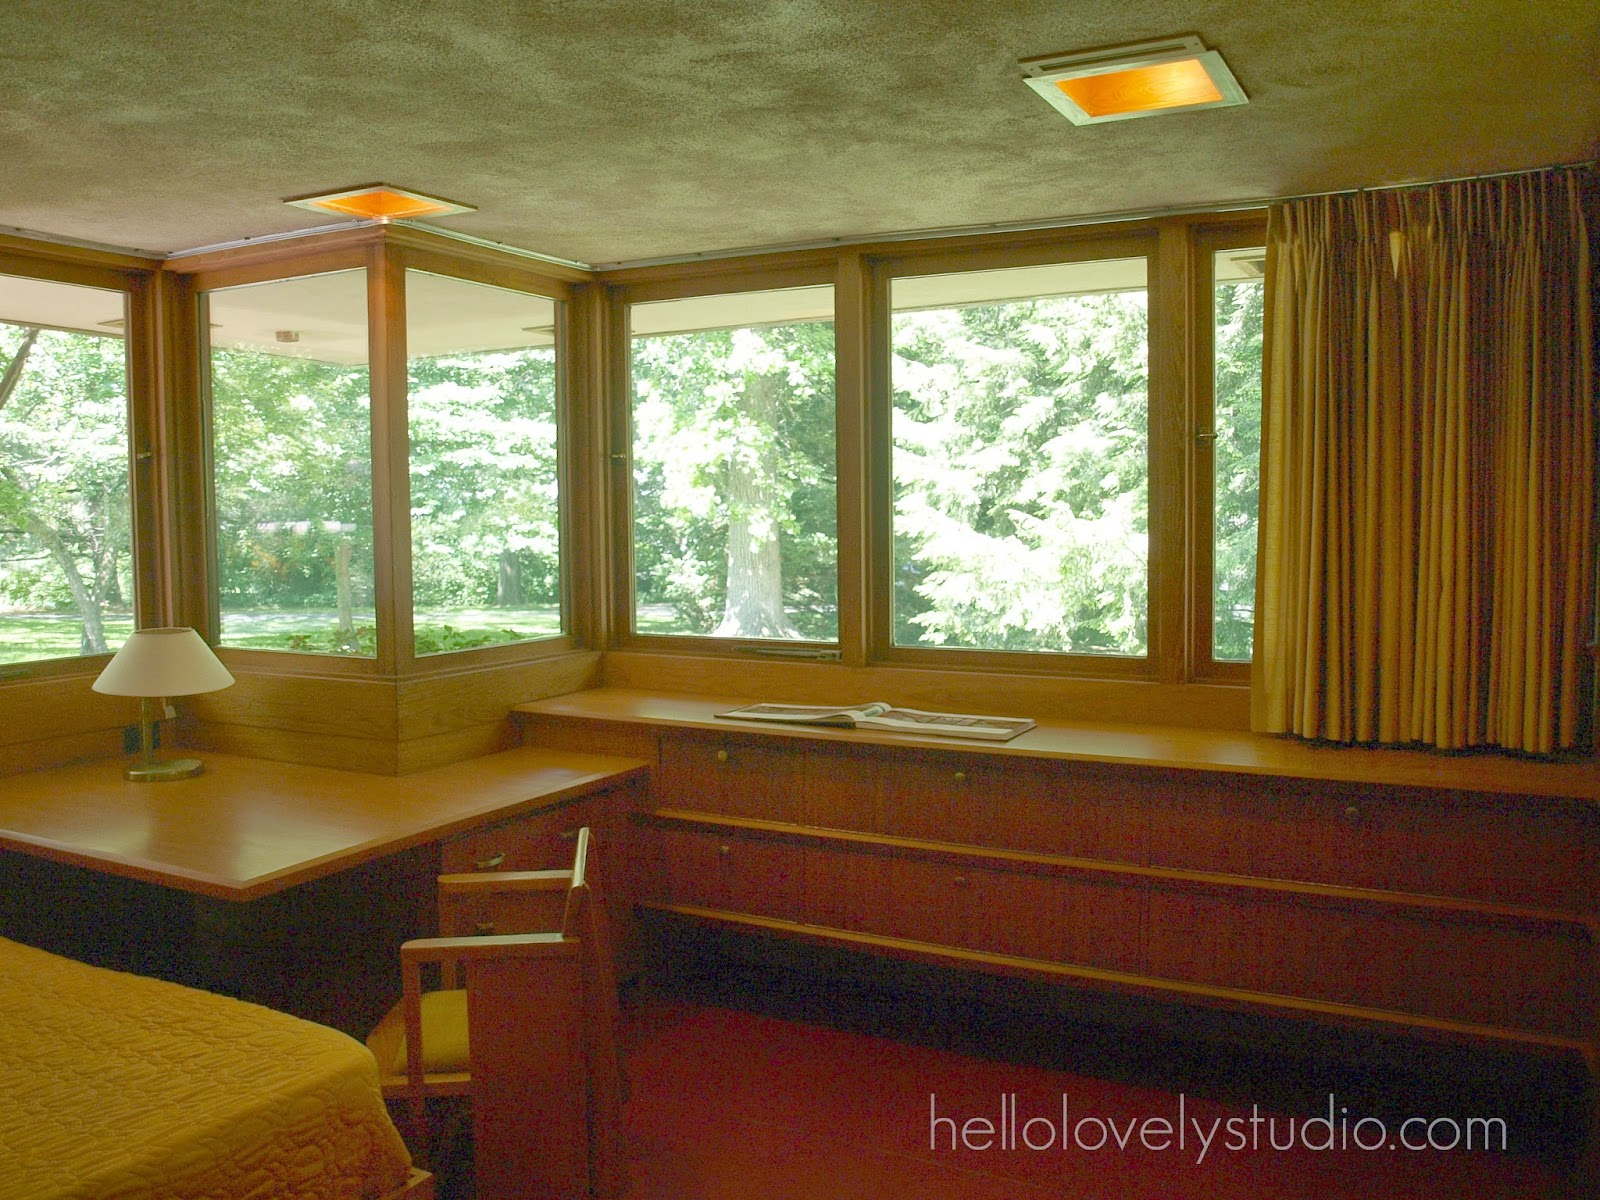 Frank Lloyd Wright Laurent House designed for owner Kenneth Laurent on Spring Brook Road in Rockford/ Designed to be wheelchair-accessible. #flw #franklloydwrighthouse #midcenturymodernarchitecture